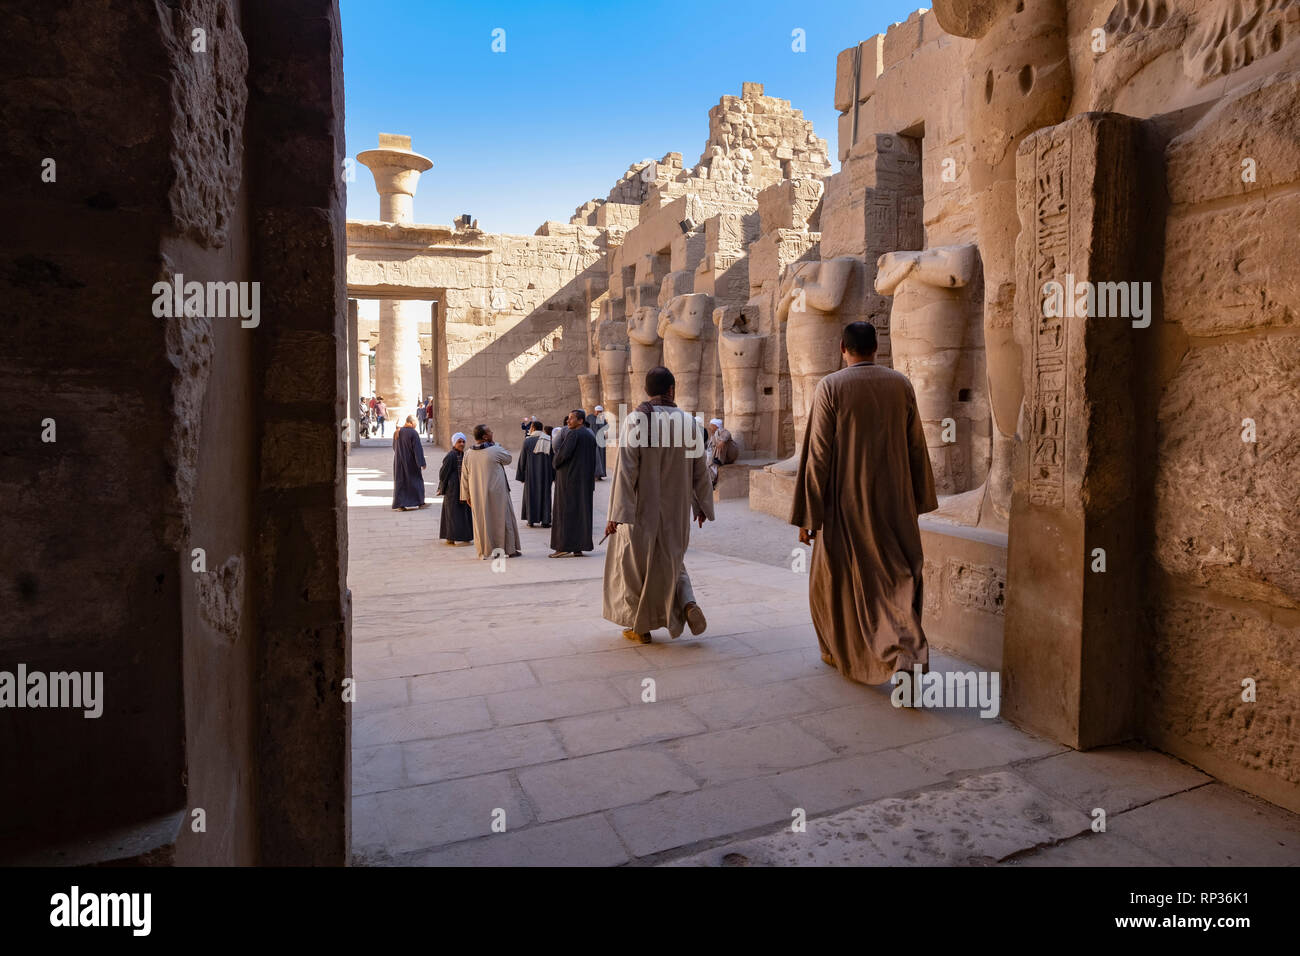 Luxor temple, egyptian men in traditional clothes in the ruins - Stock Image